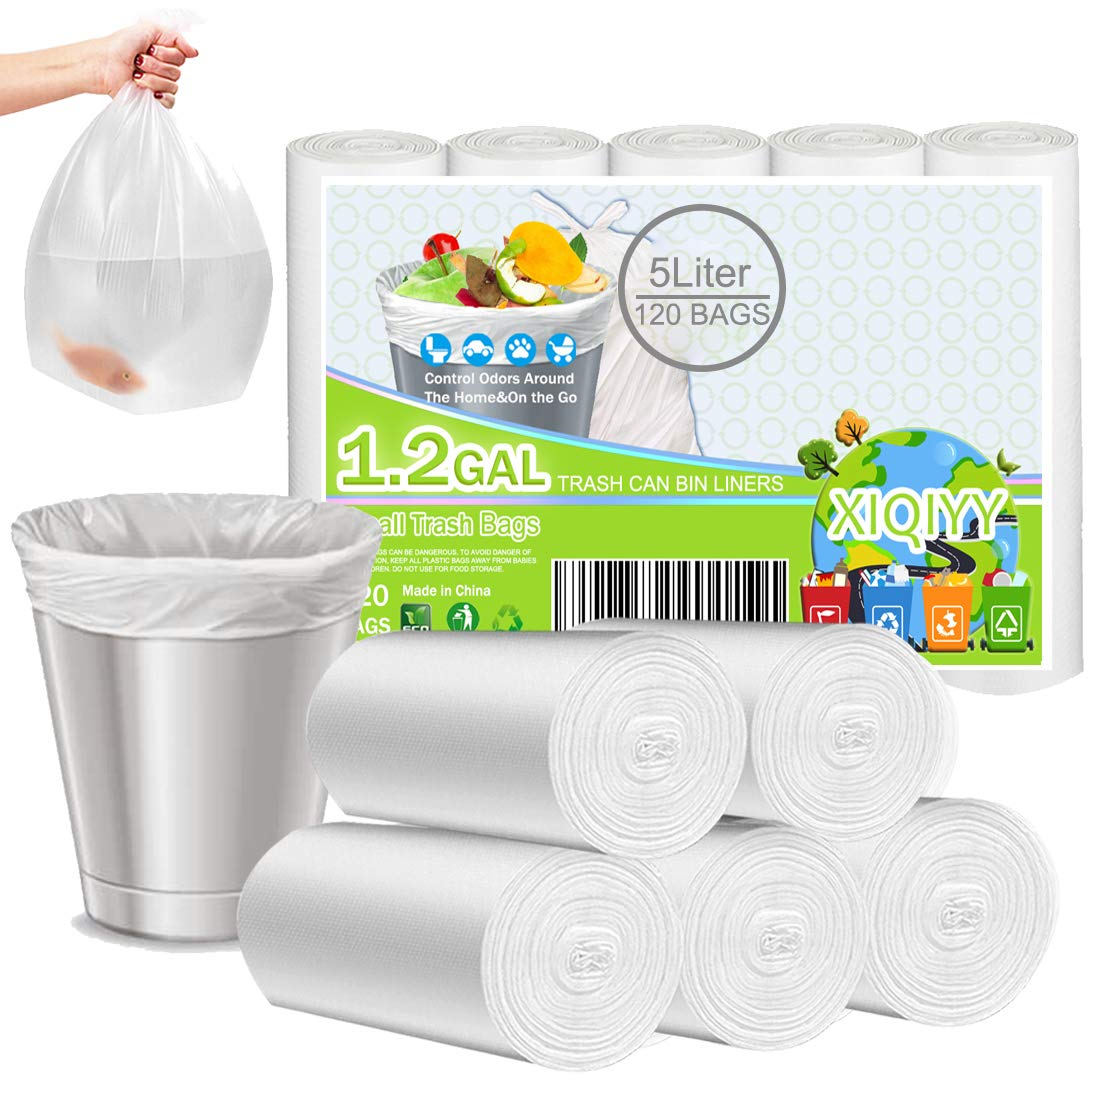 1 2 Gallon Biodegradable Garbage Bags 120 Count Bathroom Trash Can Liners Recycling Material Unscented Wastebasket Bins Liners For Kitchen Home Bedroom Office Garbage Can Fit 3 5l Xiqiyy Small Trash Bags Industrial